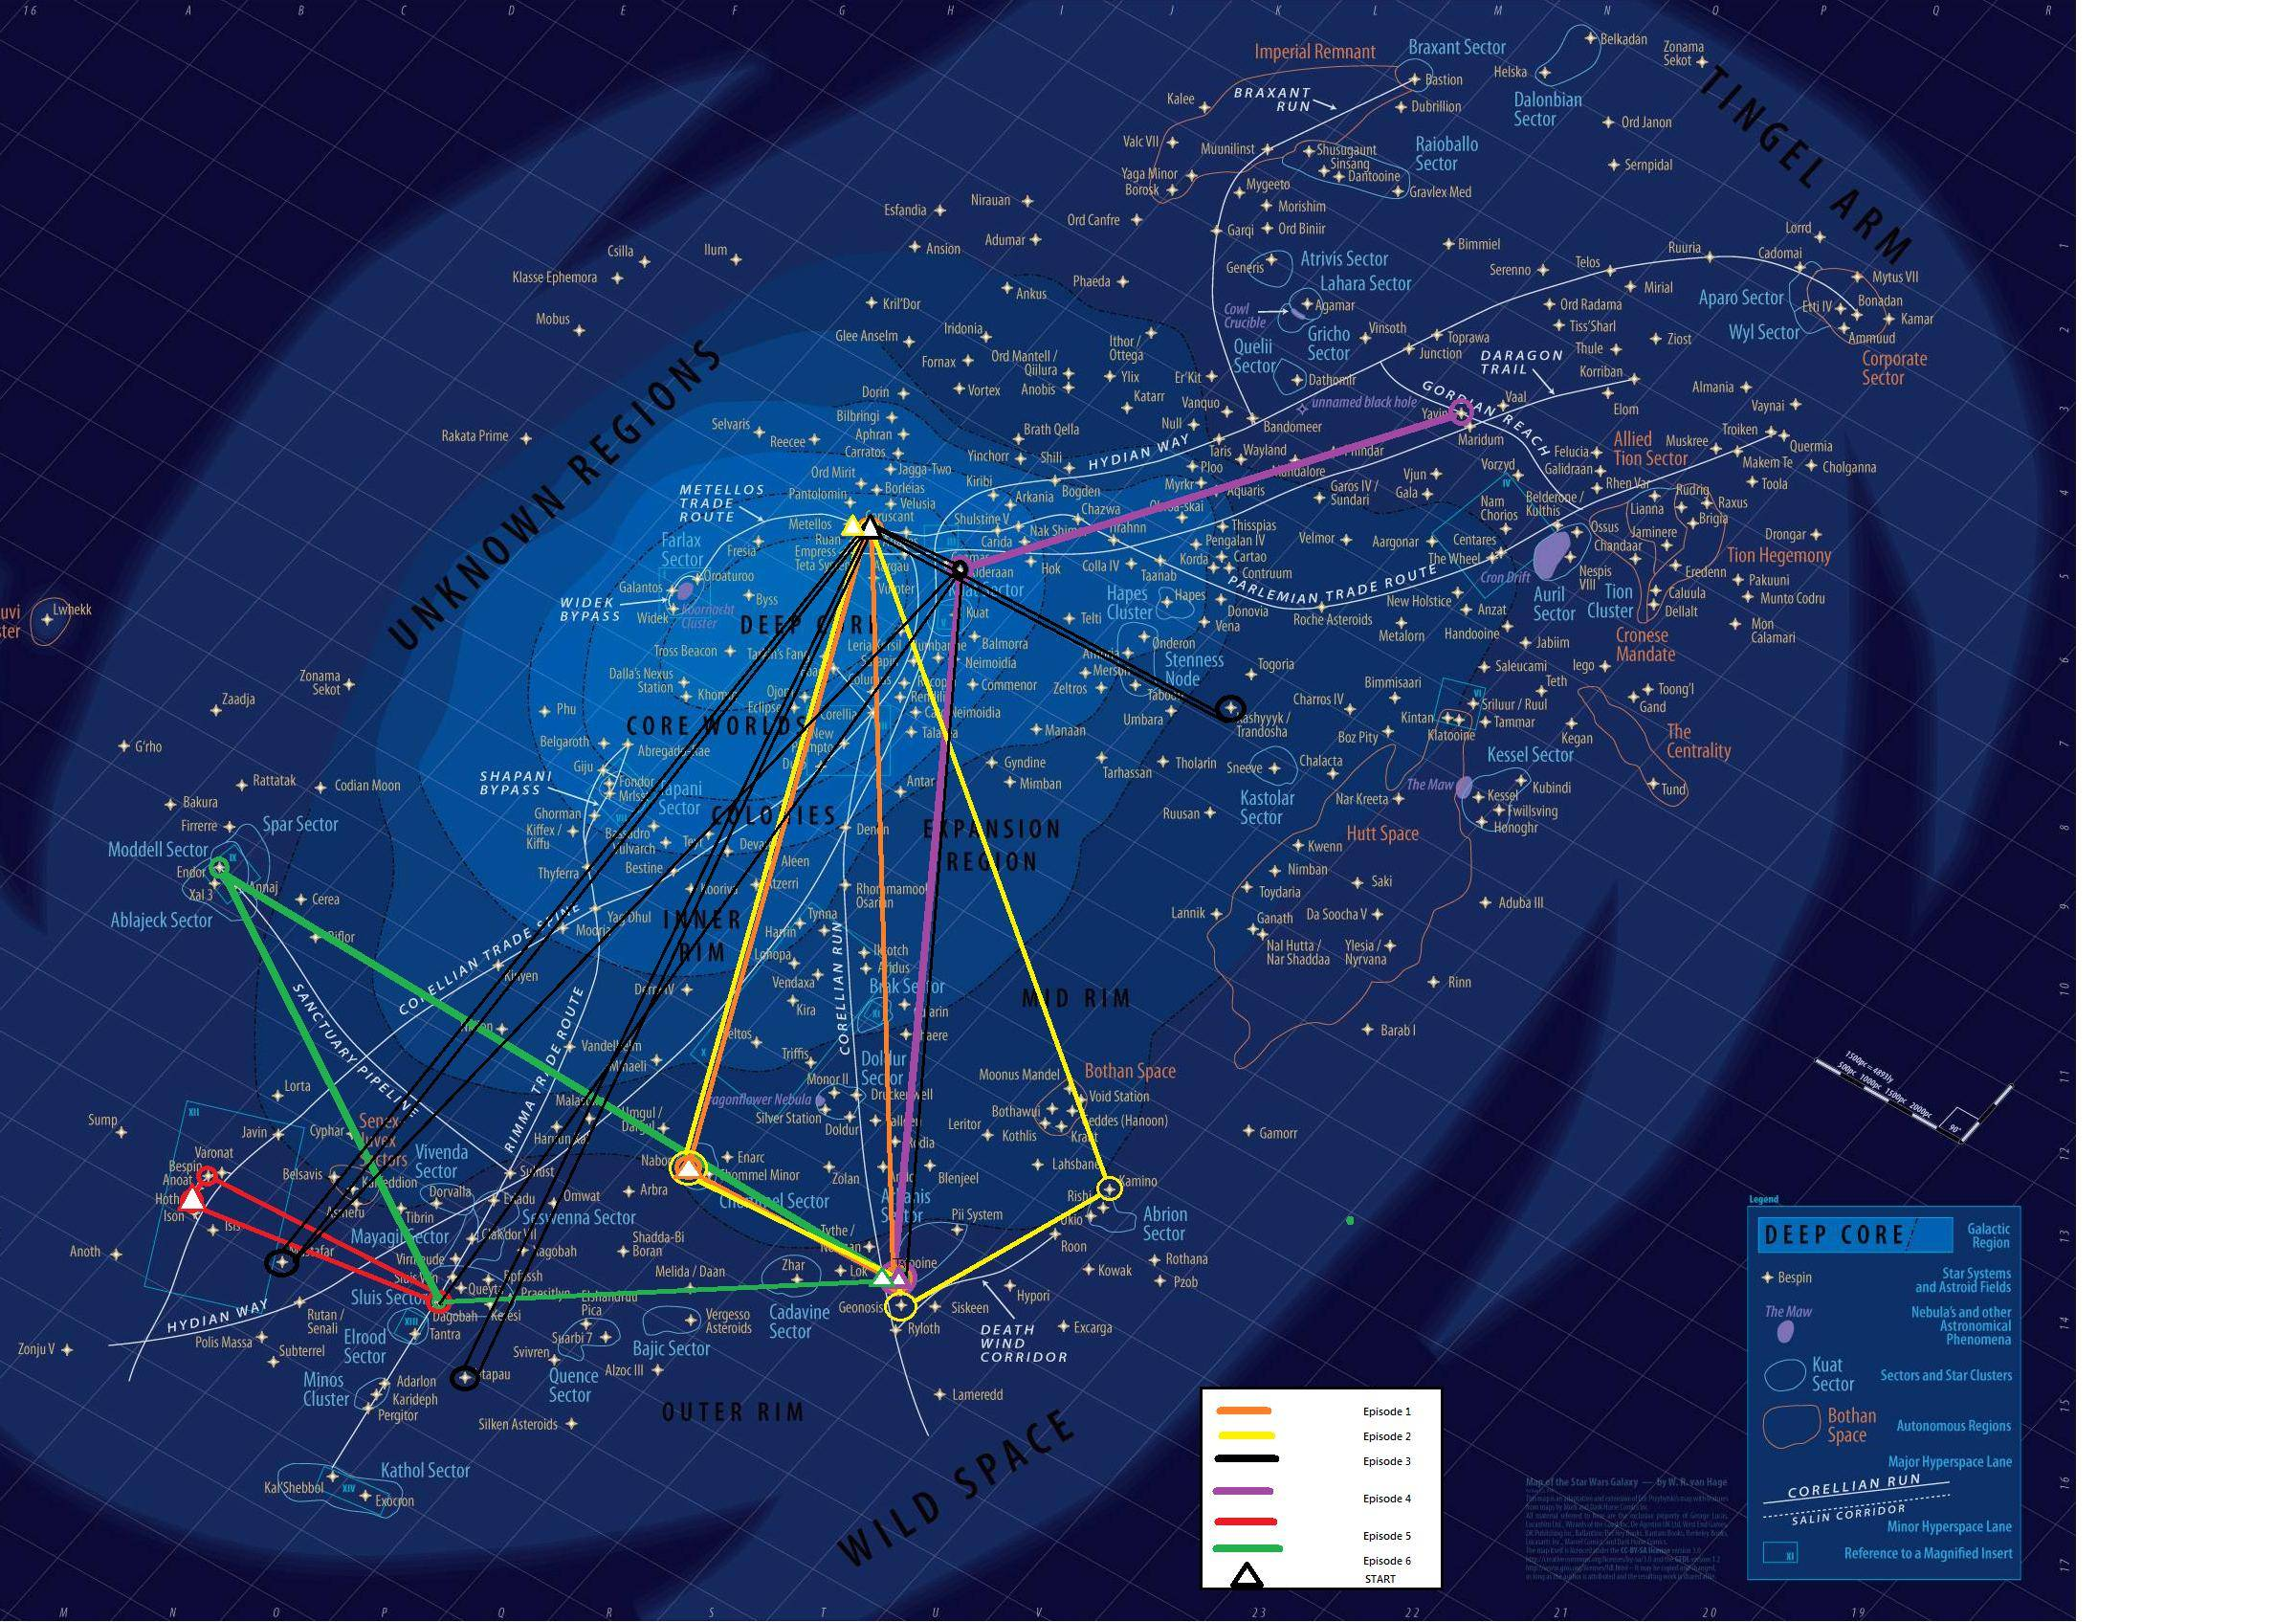 Star Wars Universe Map An Epic, Unbelievably Detailed Map Of The 'Star Wars' Galaxy